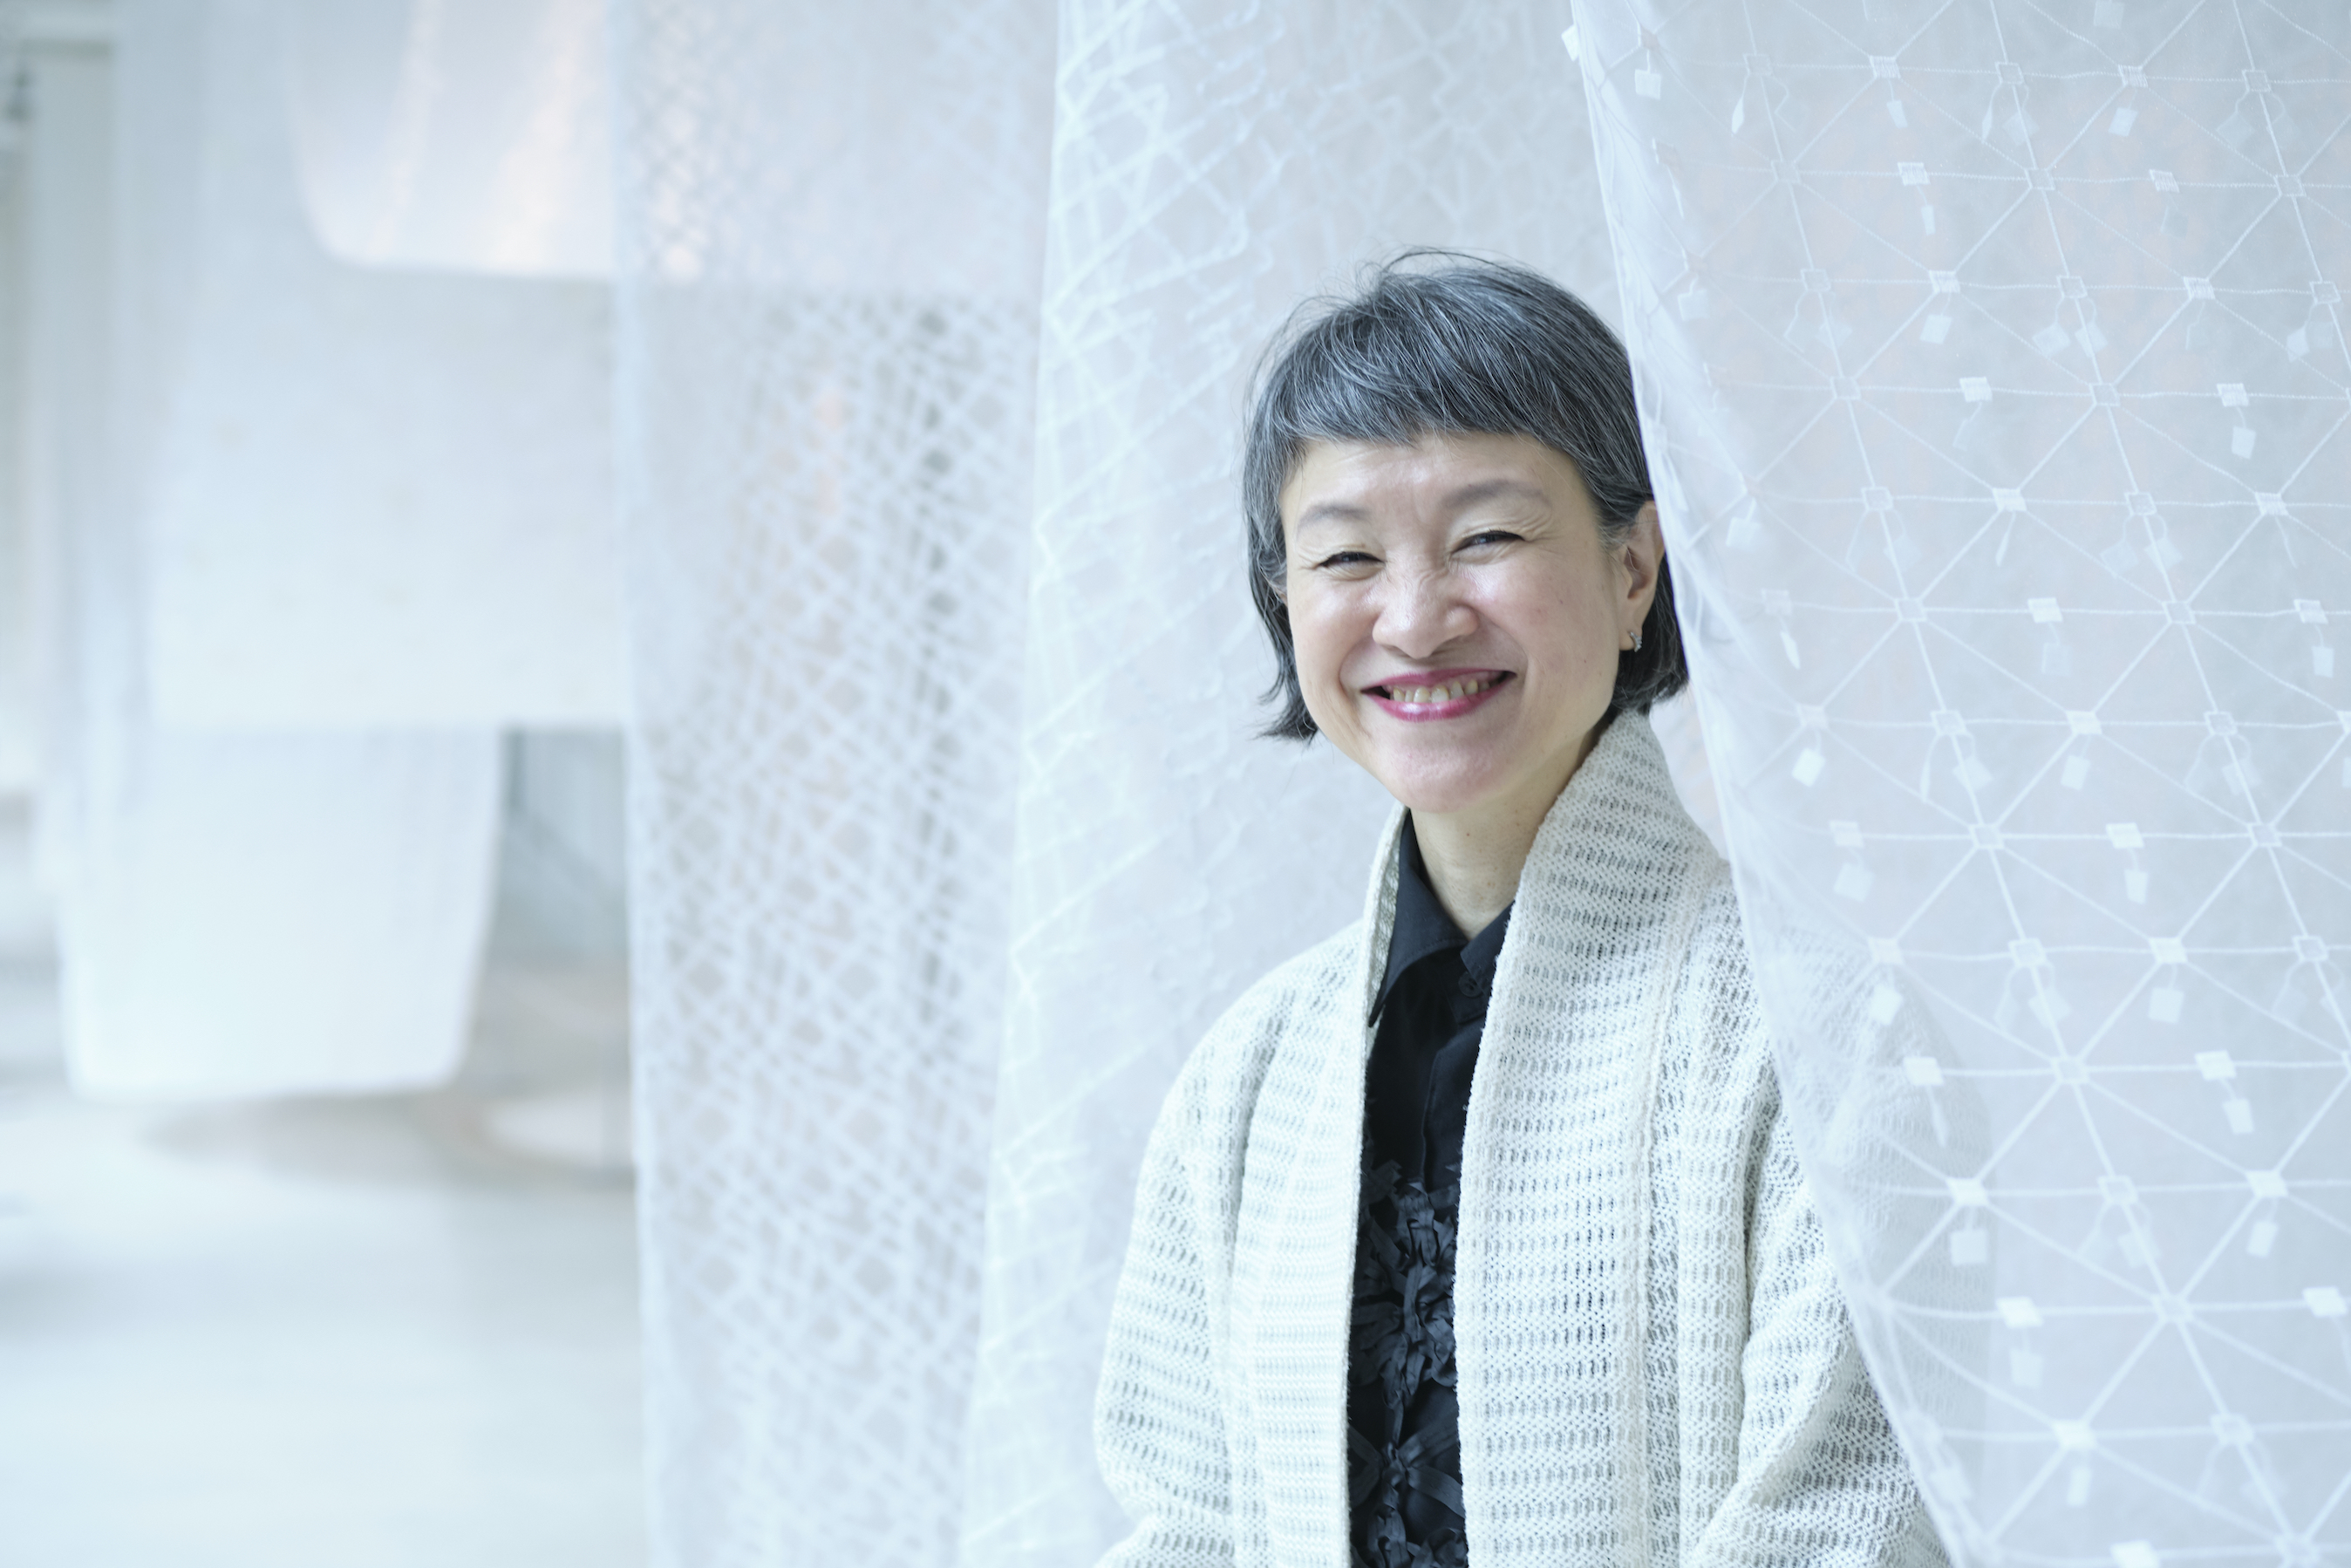 Sudo Reiko. Photo courtesy: CHAT (Centre for Heritage, Arts and Textile), Hong Kong